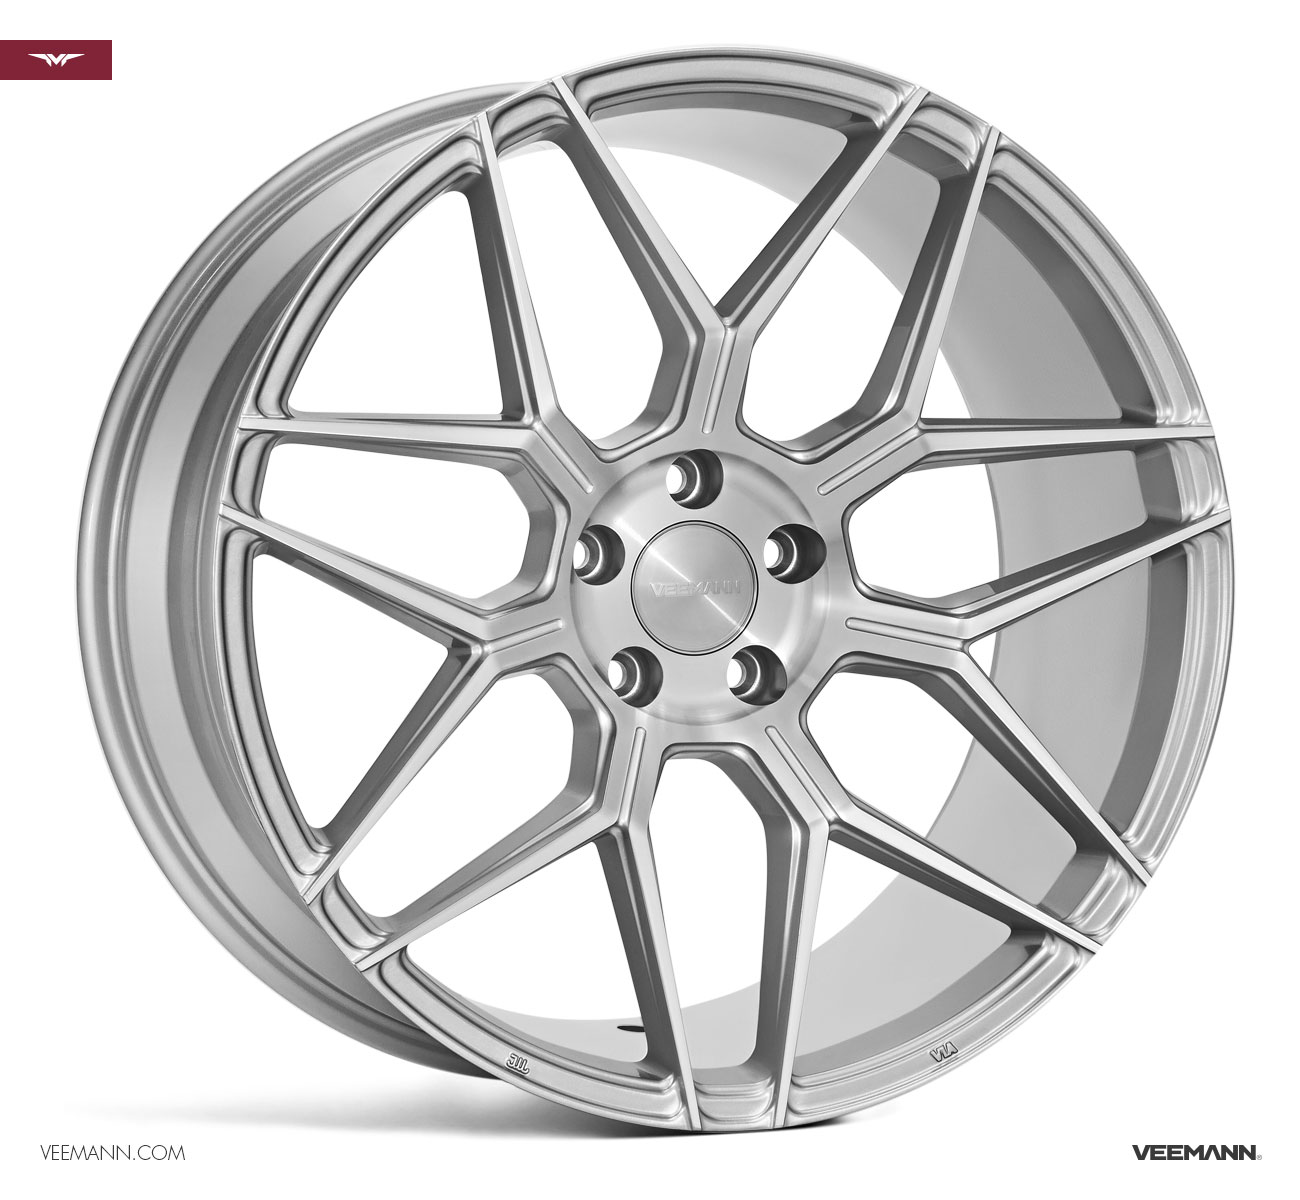 "NEW 20"" VEEMANN V-FS38 ALLOY WHEELS IN SILVER POL WITH WIDER 10"" REAR"